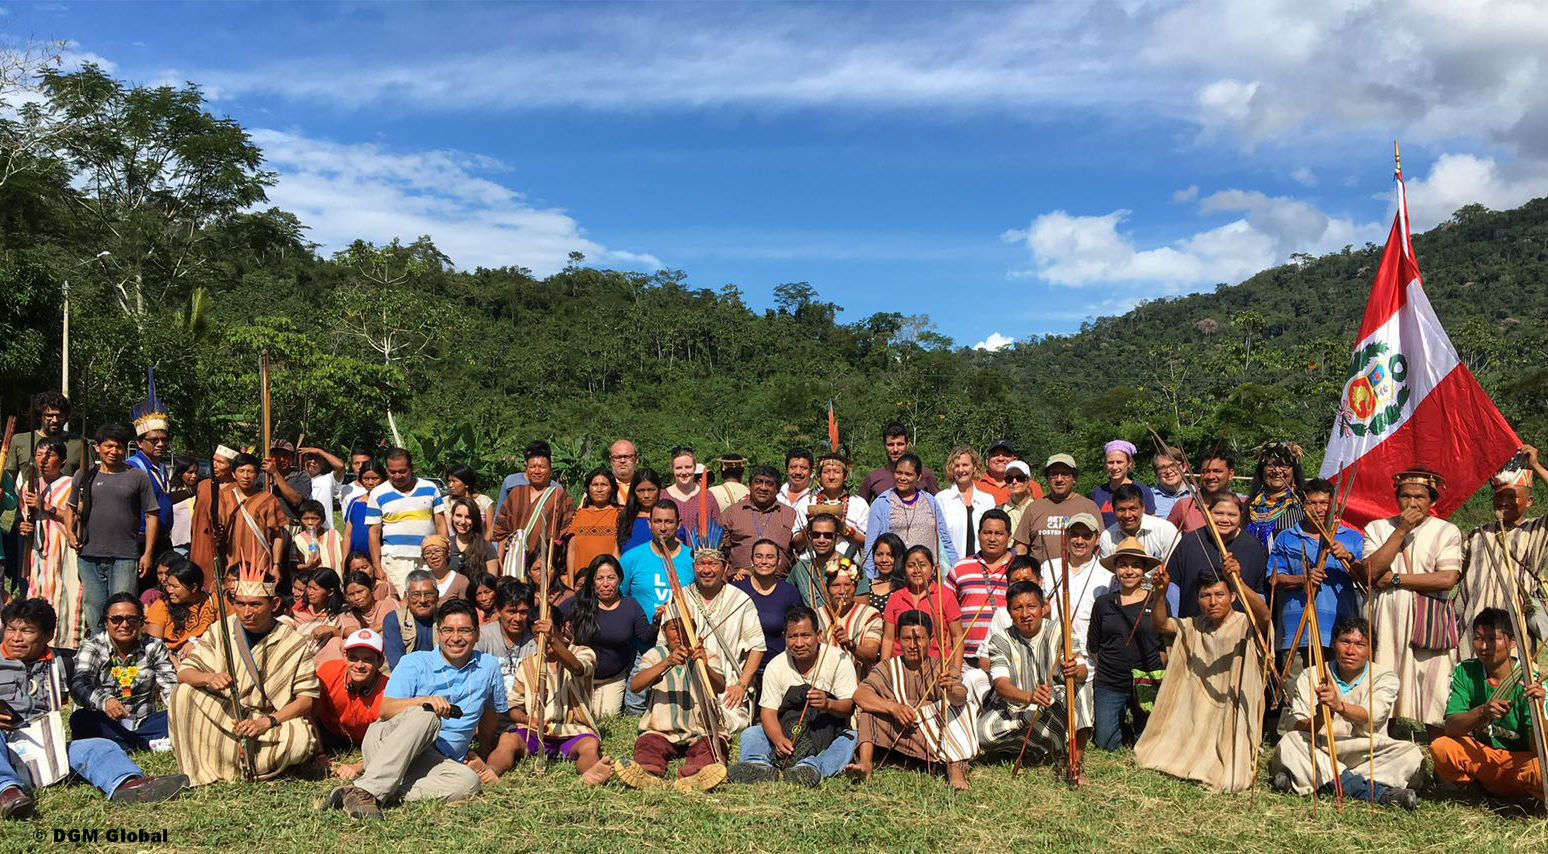 Exchange participants posing for a group photo with members of the Palomar native community